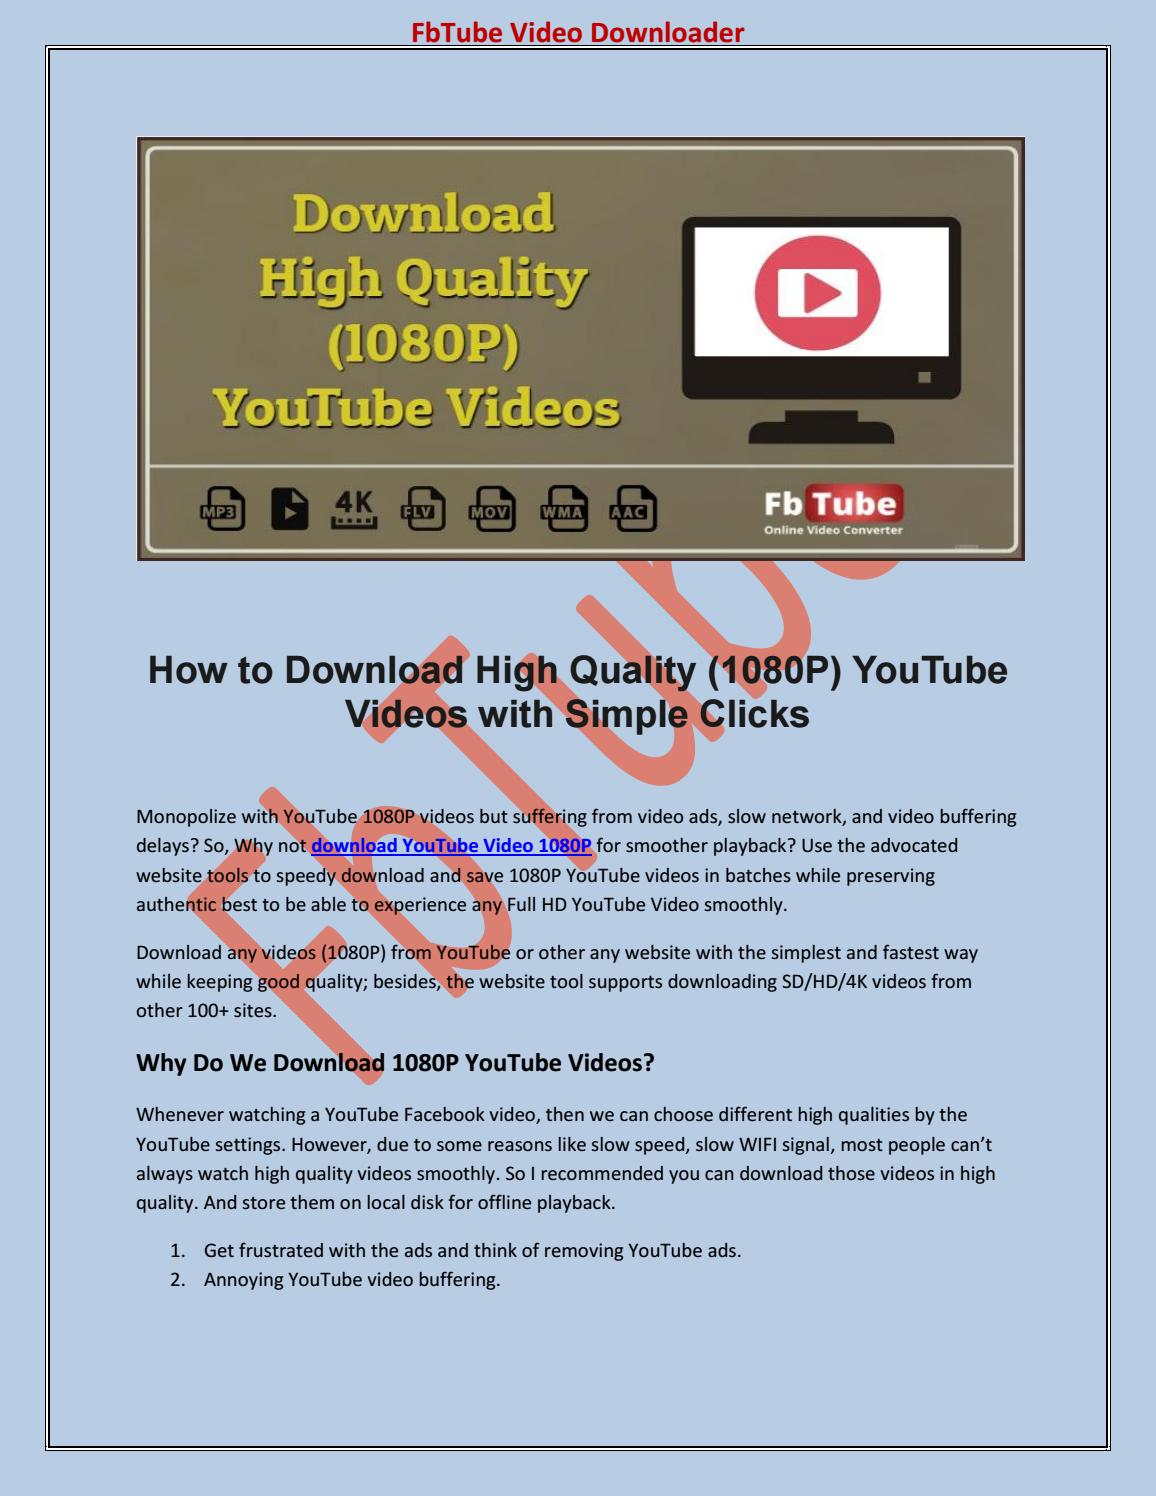 Download High Quality (1080P) YouTube Videos by Steven Taylor - issuu